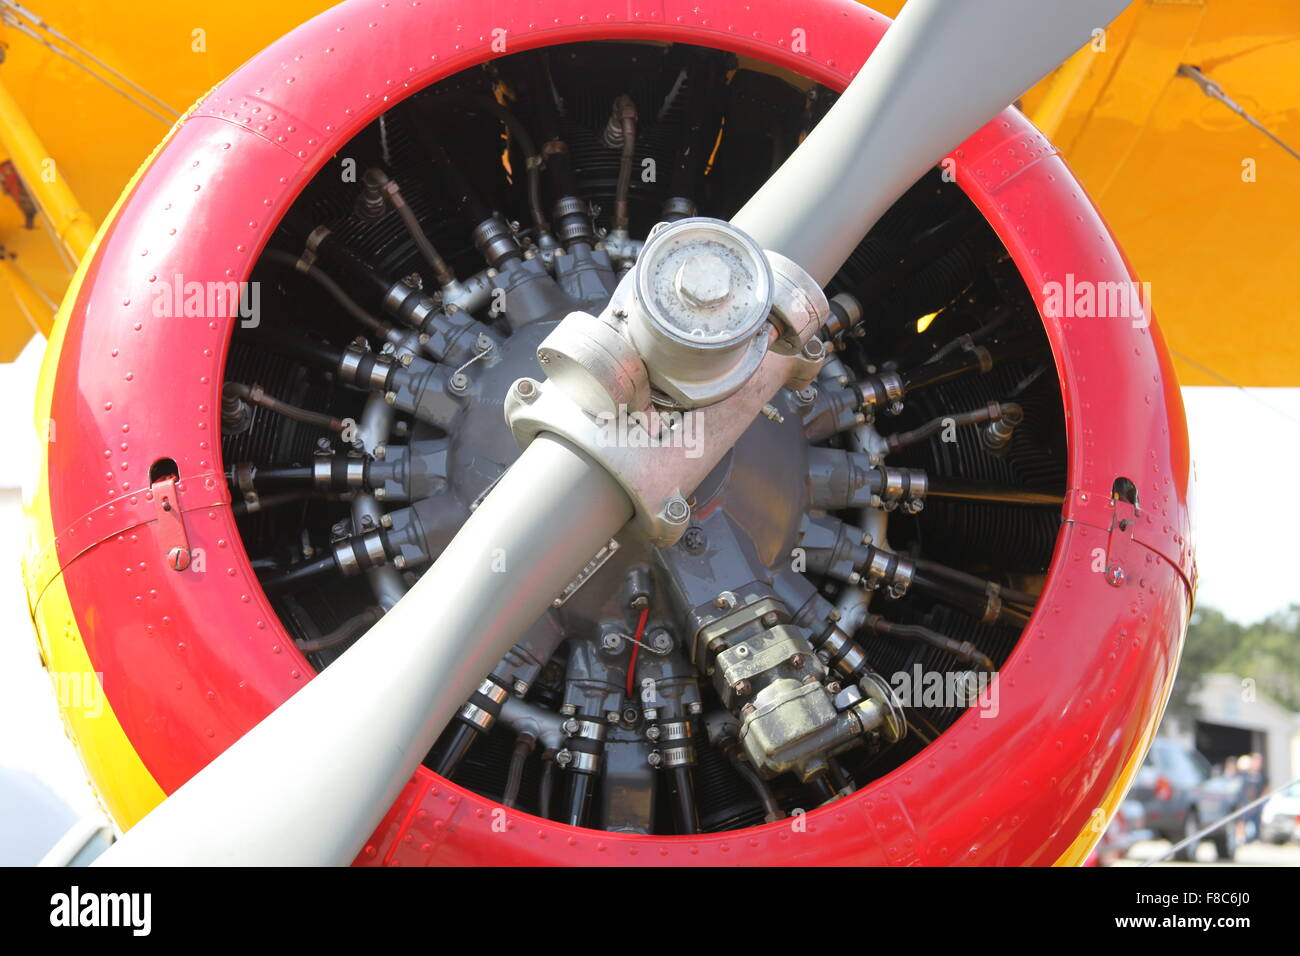 OLD BI PLANE ENGINE PHOTO WITH PROPELLER - Stock Image